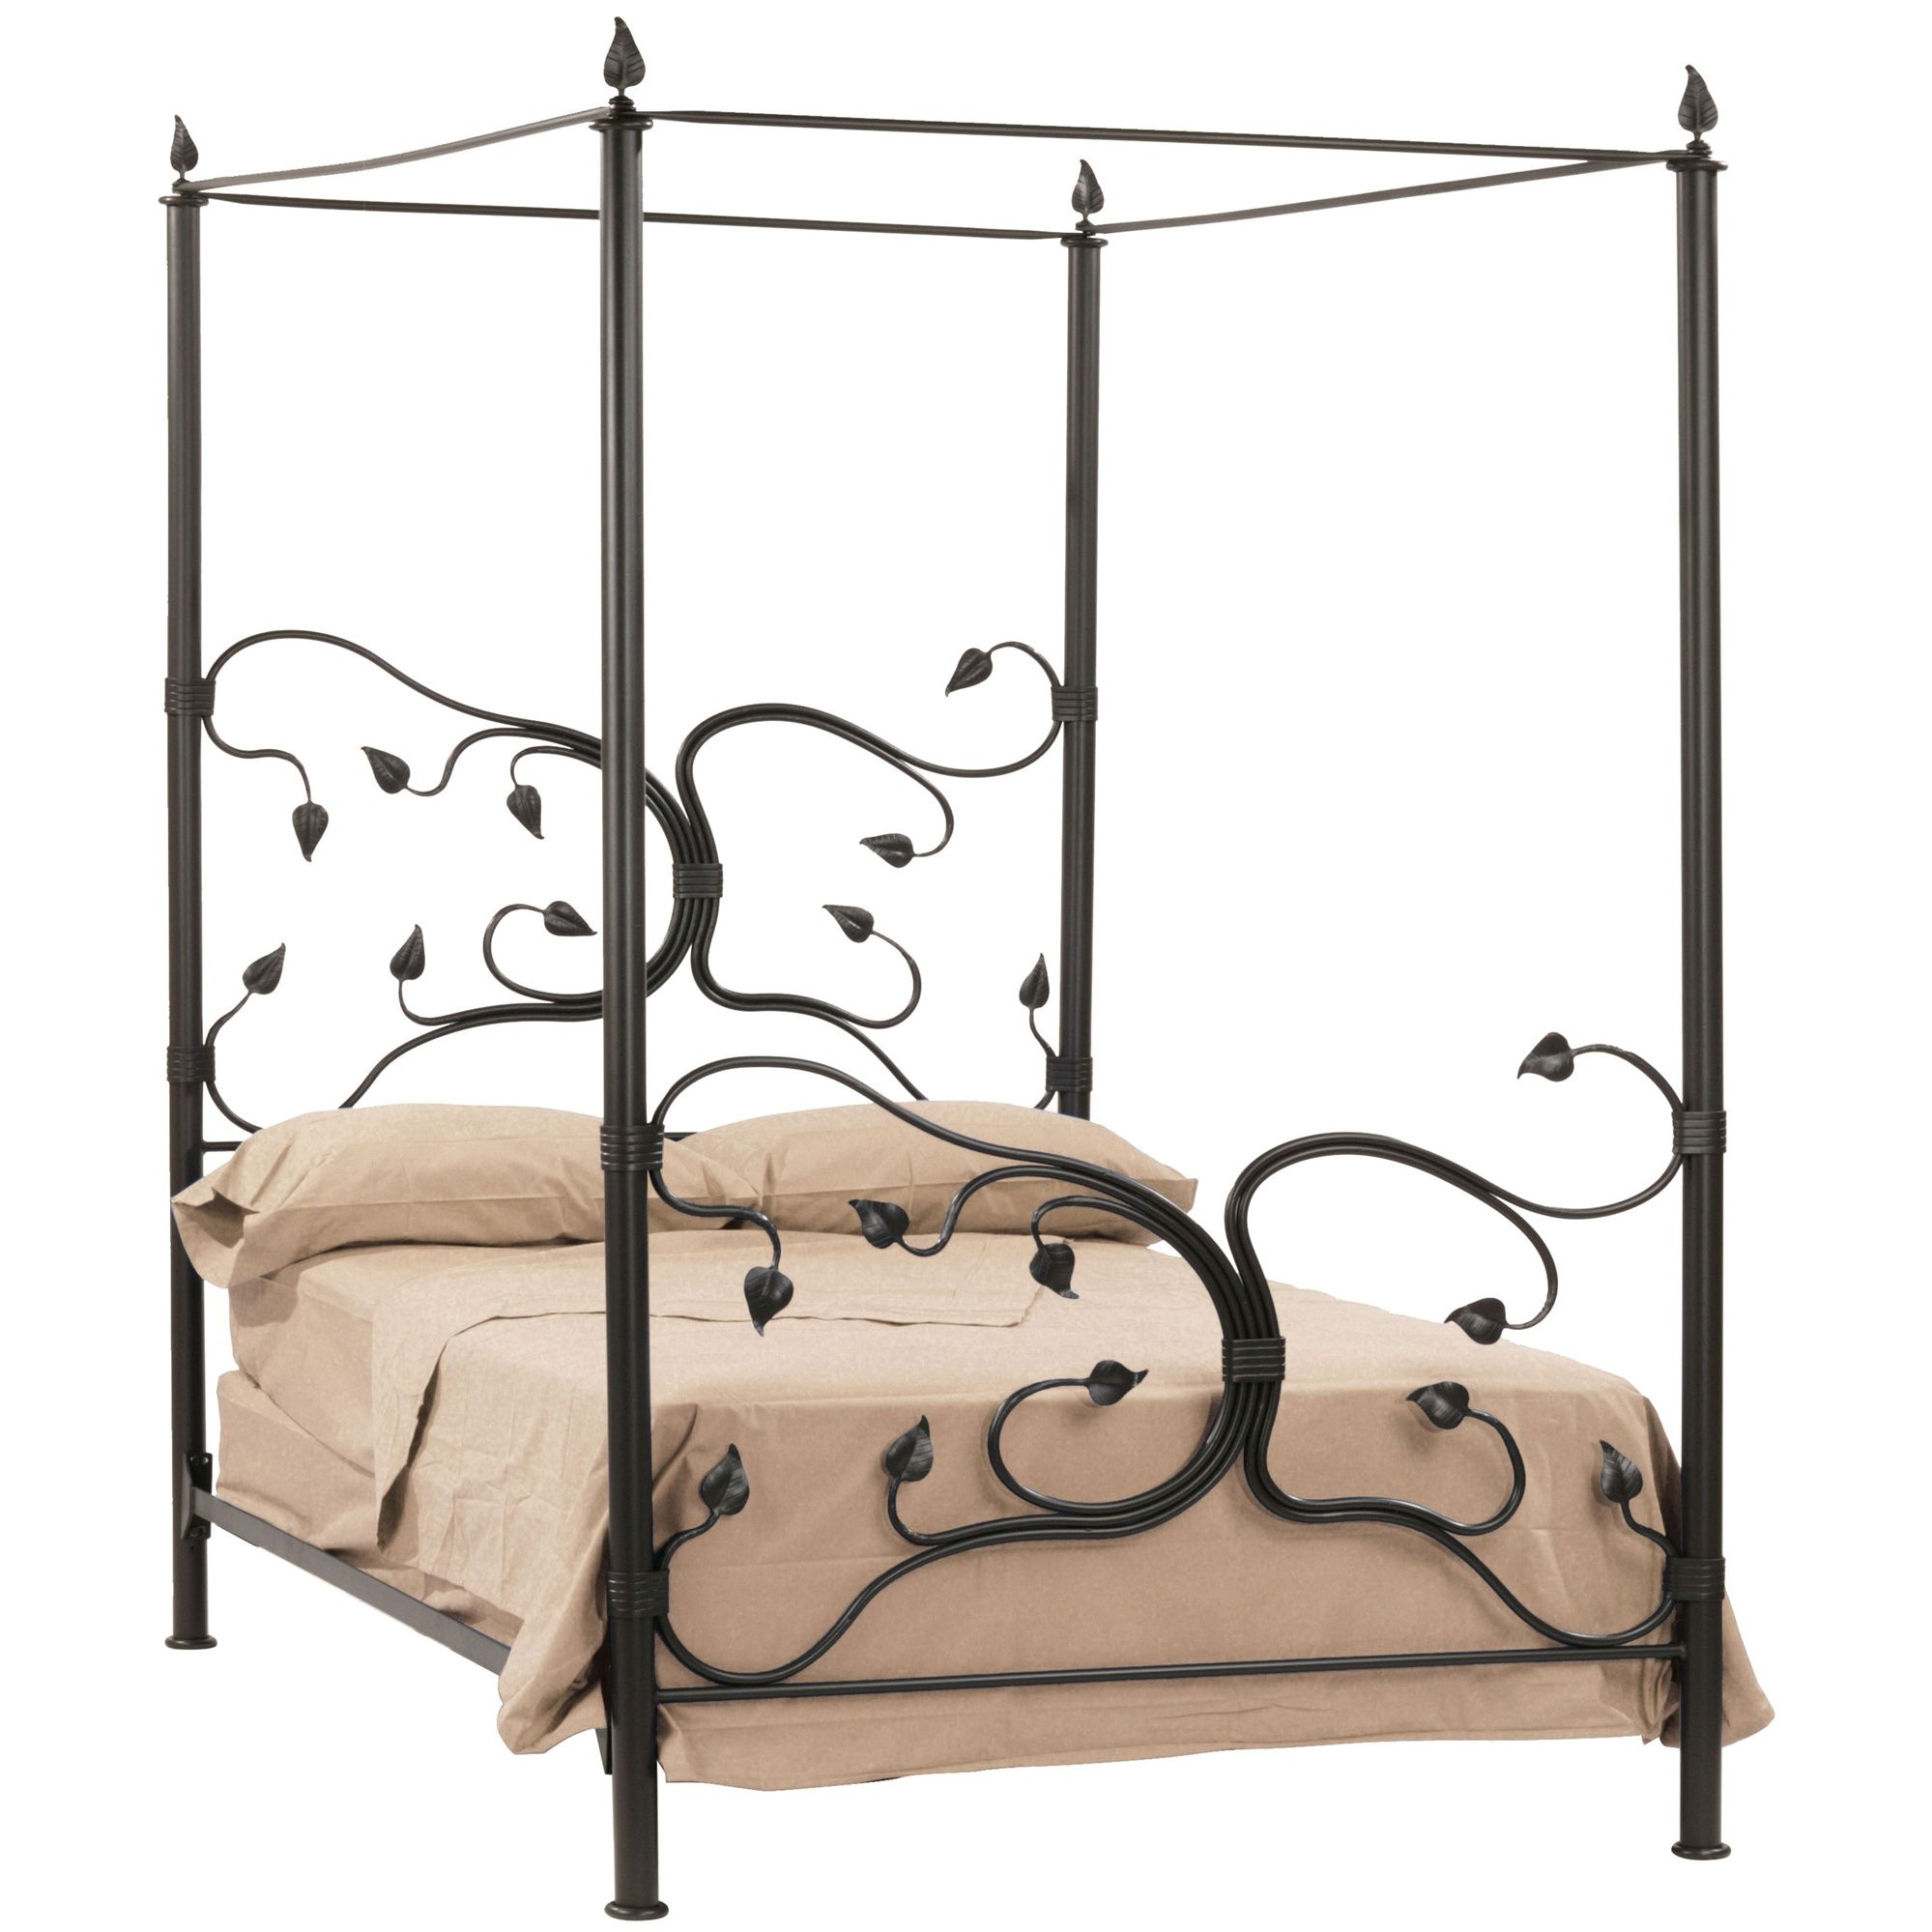 Wrought Iron Canopy Bed Eden Isle Canopy Bed With Images